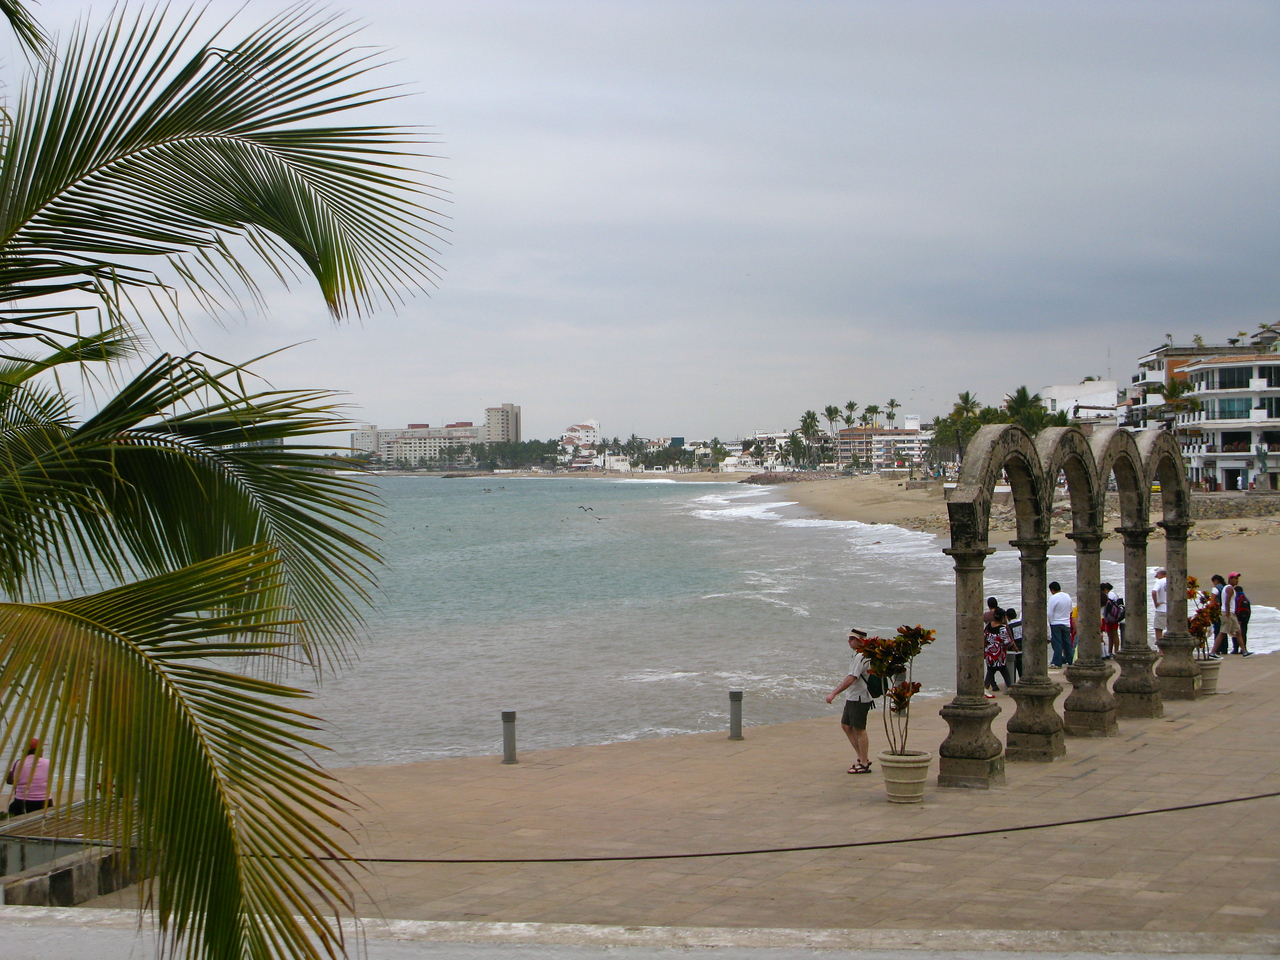 This is the way the Malecon looked with the original arches in 2011 before the renovation.  These supposedly didn't survive, so they rebuilt/recast smaller ones which are now behind the ampitheatre.